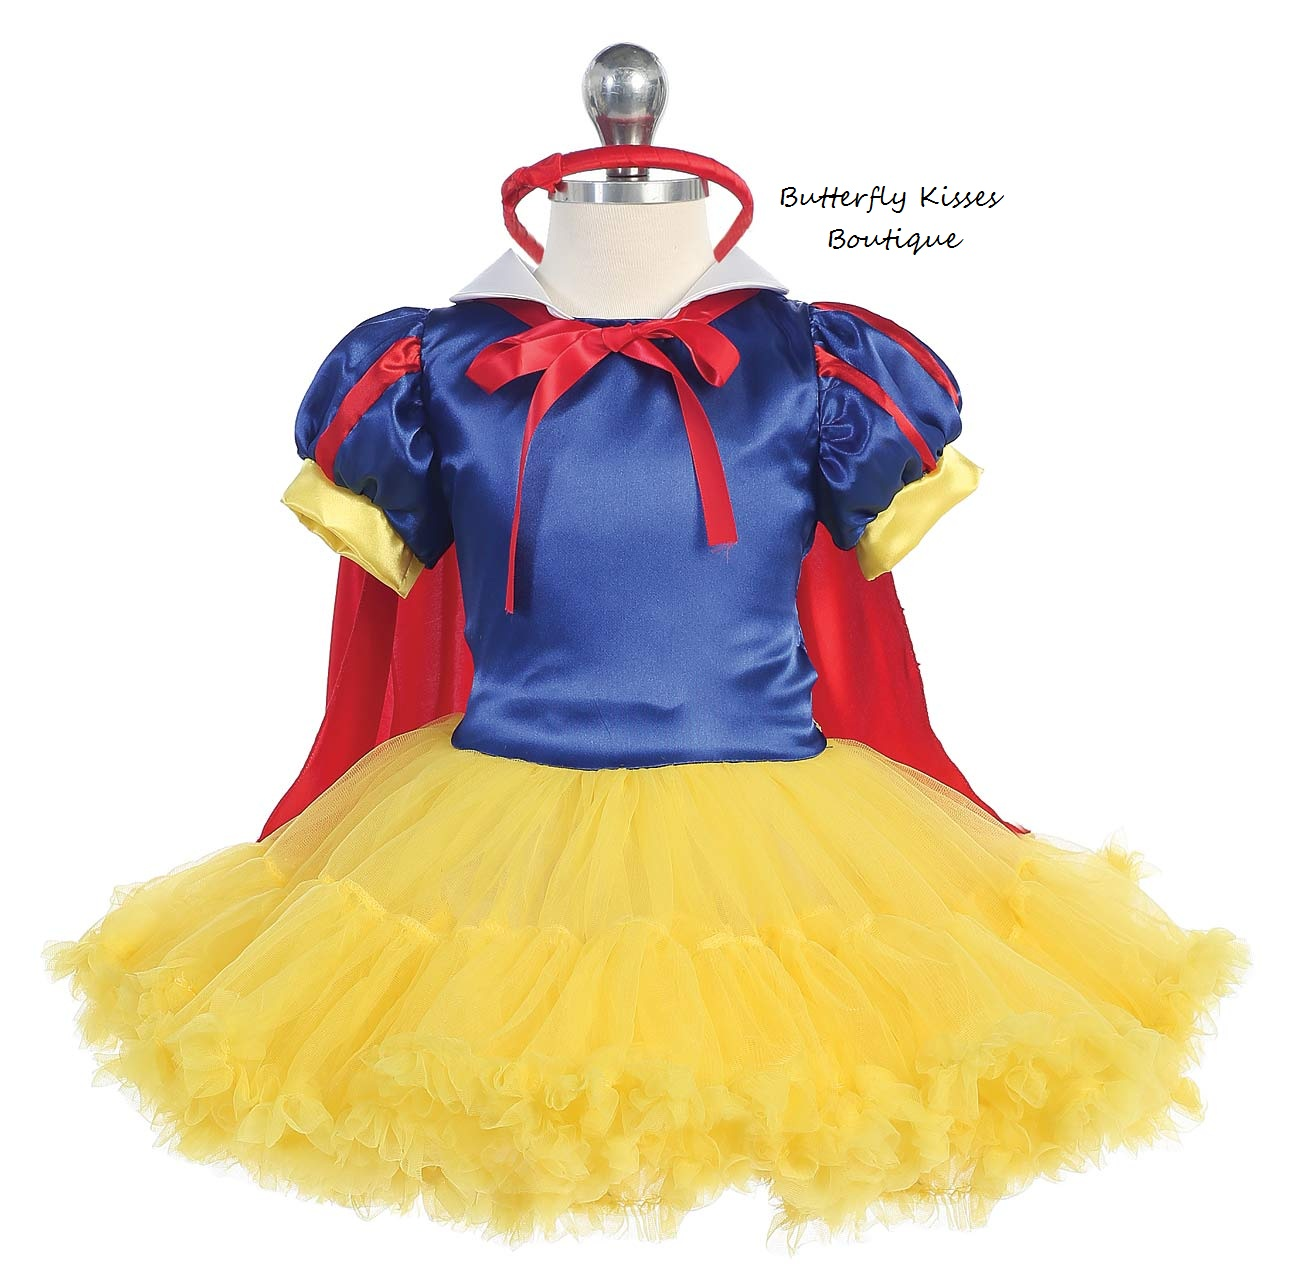 Snow White Tutu Costume  sc 1 st  Butterfly Kisses - Storenvy & Snow White Tutu Costume · Butterfly Kisses · Online Store Powered by ...